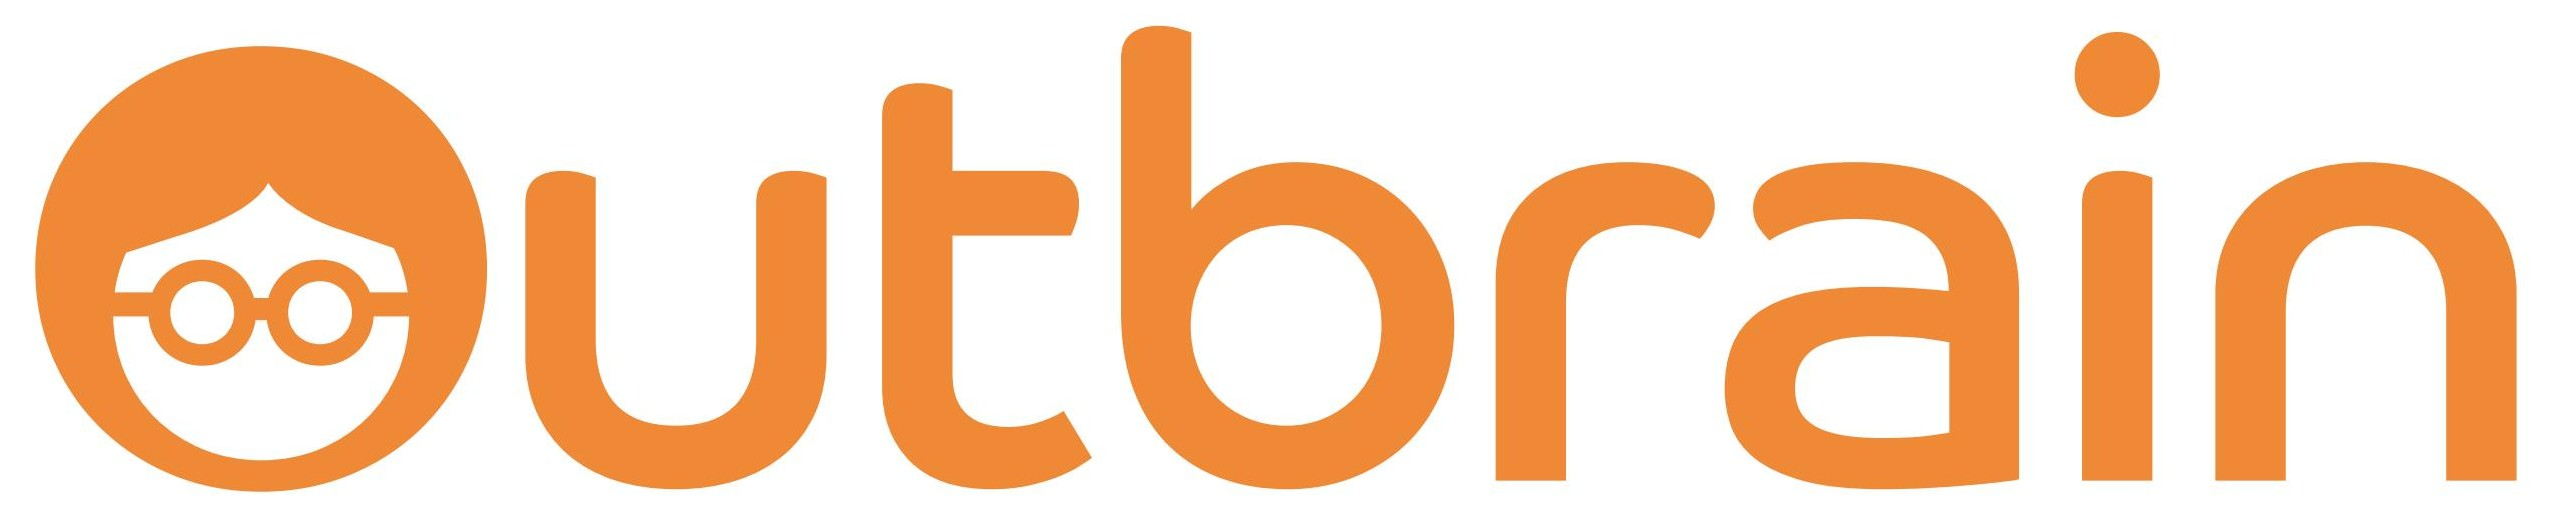 Outbrain-logo - Outbrain Logo Vector PNG